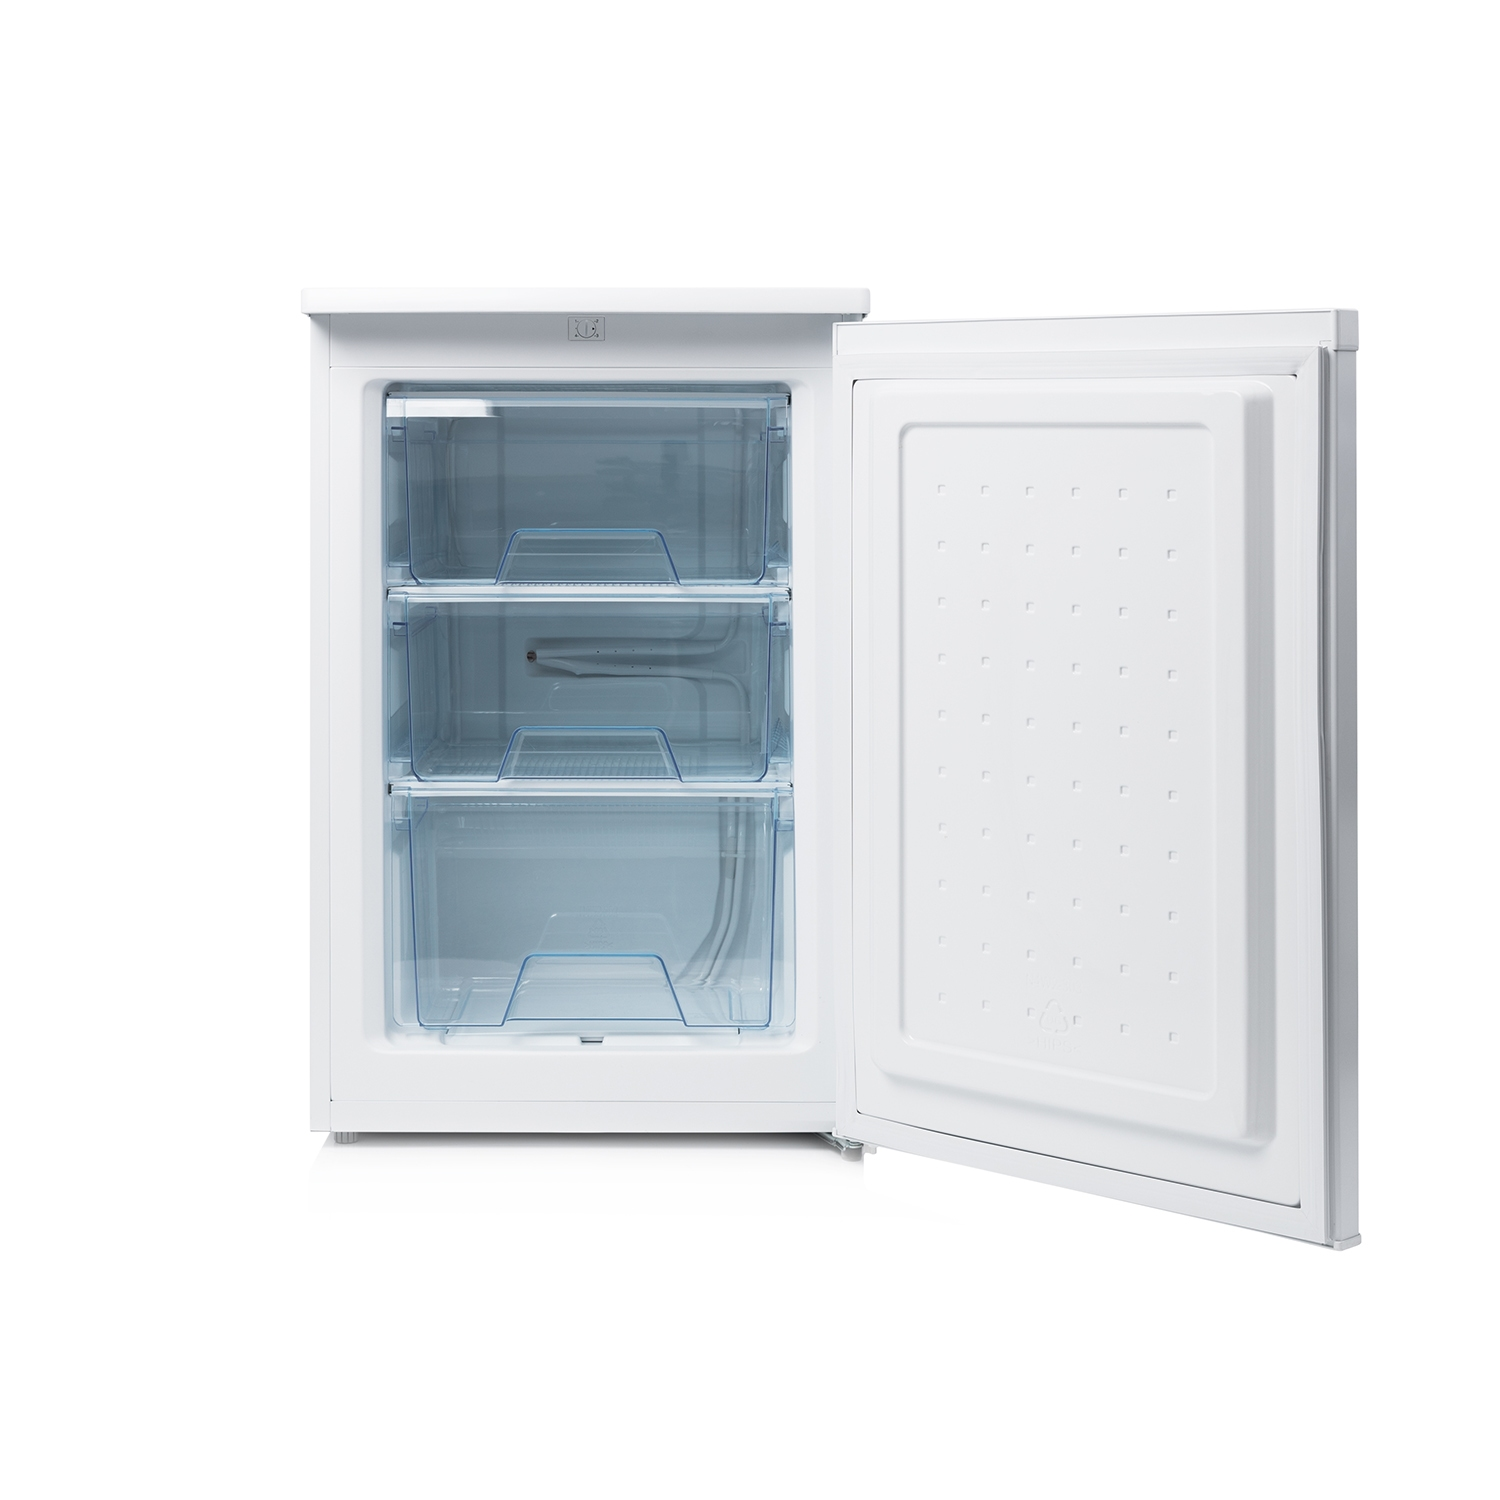 Haden 55cm static undercounter Freezer - White - A+ Energy Rated - 1